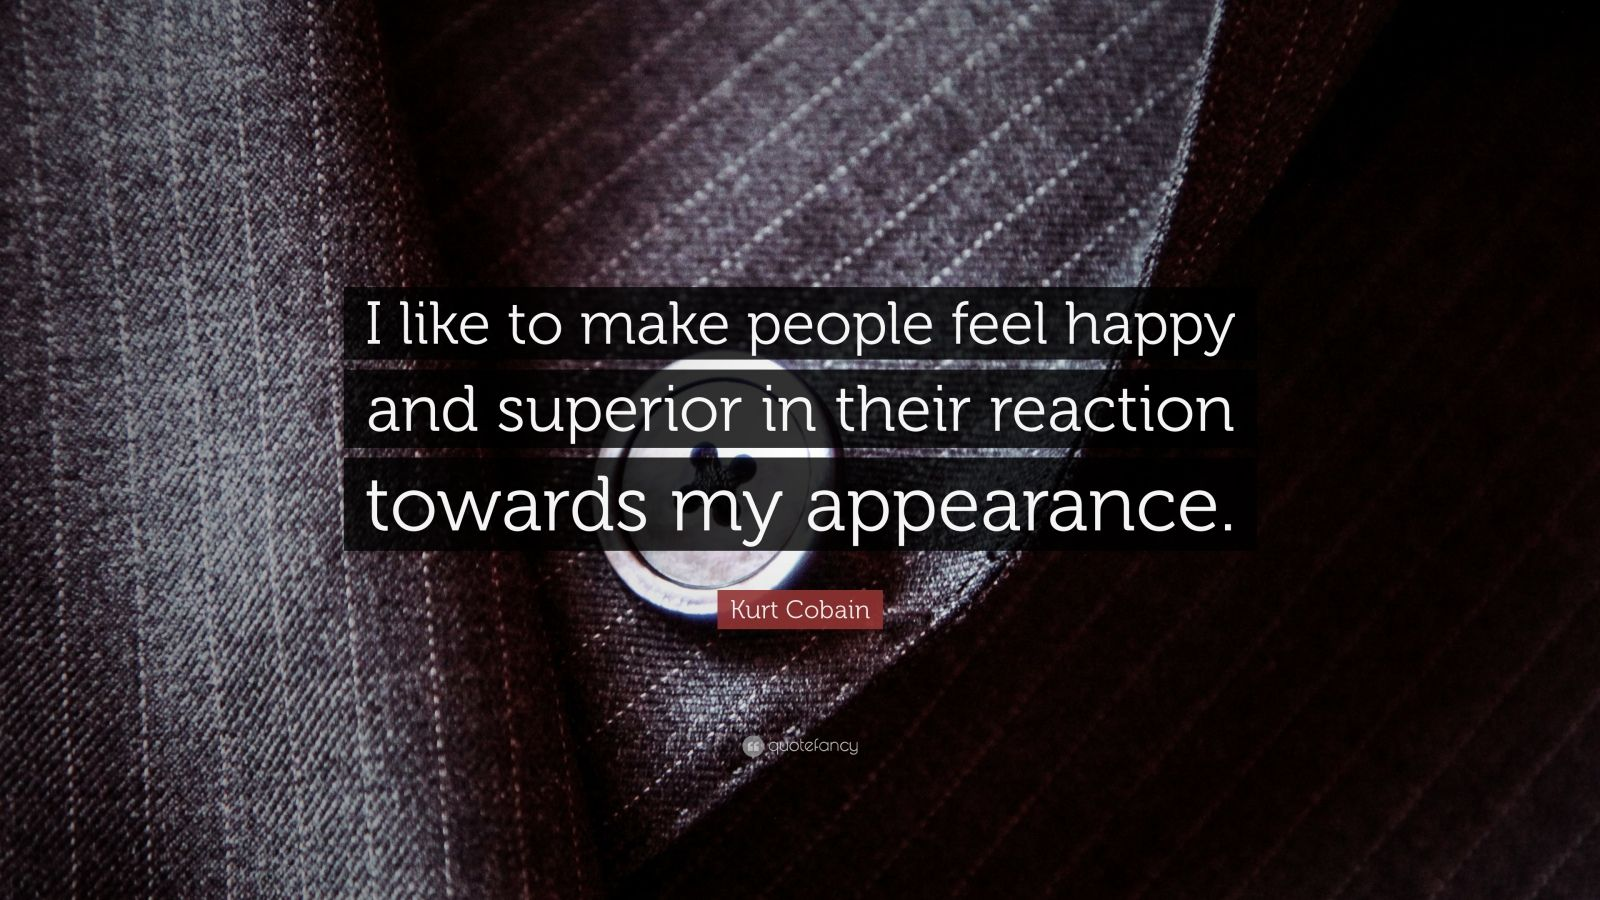 """Kurt Cobain Quote: """"I like to make people feel happy and superior in their reaction towards my appearance."""""""